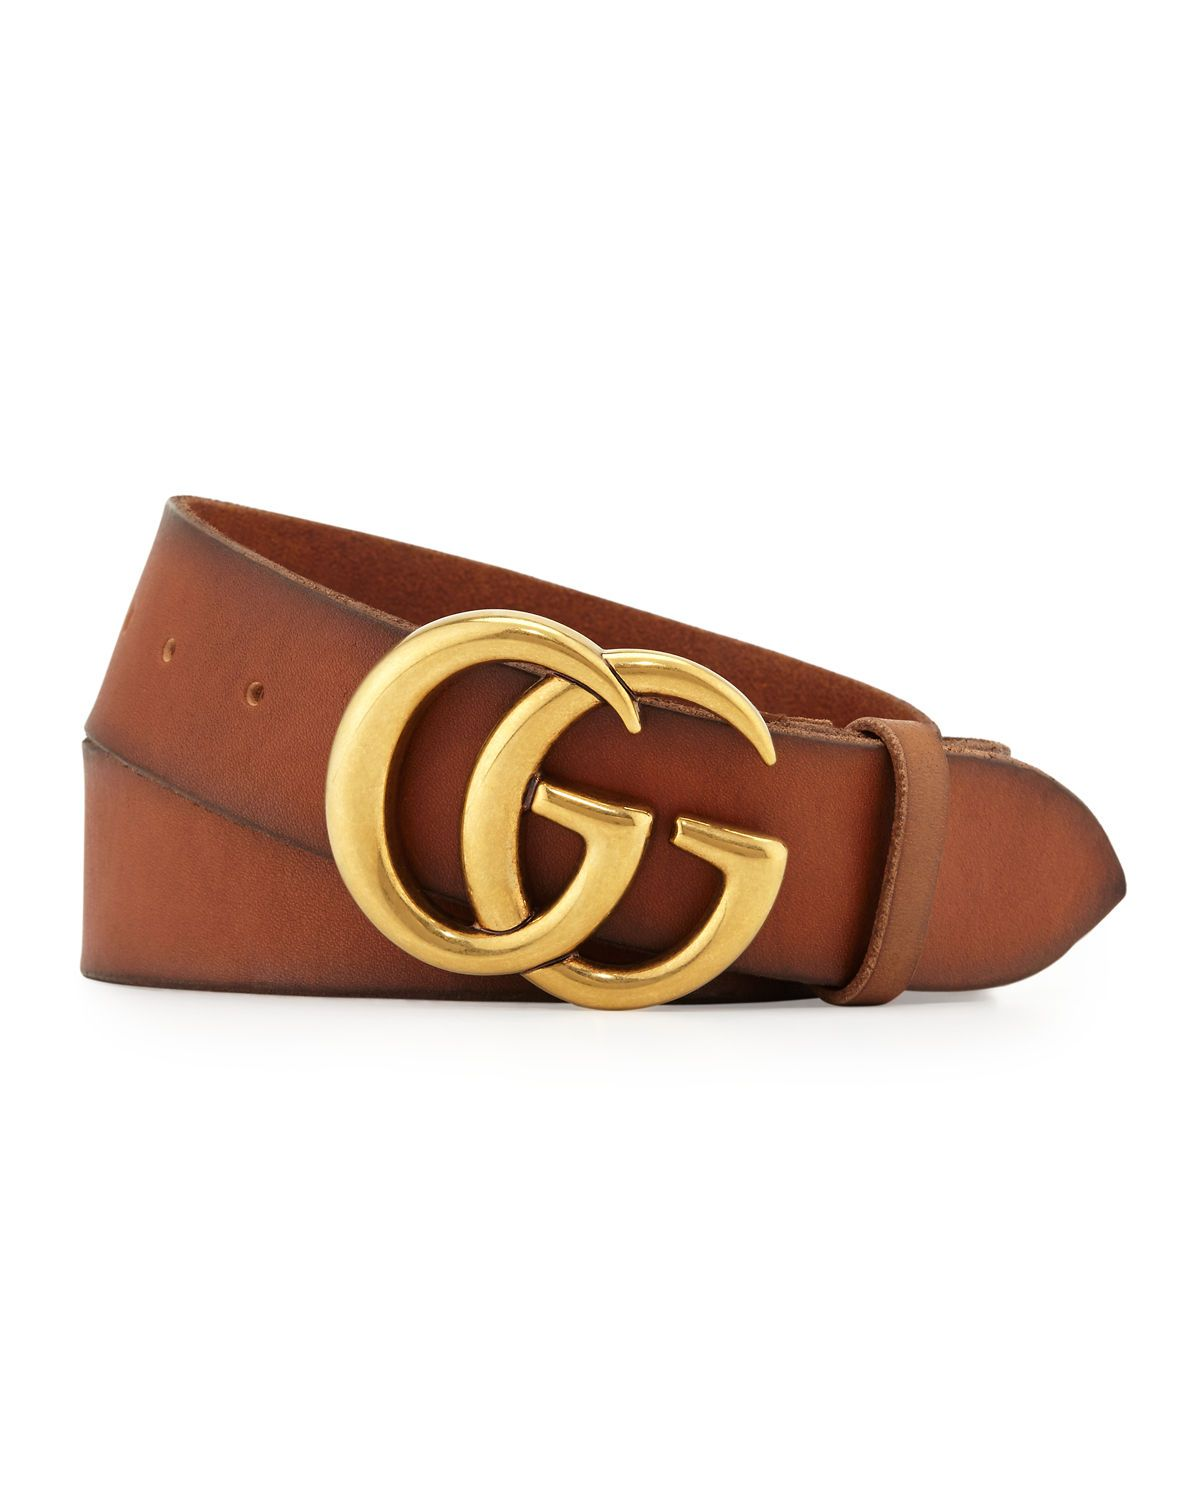 633a567a7 Smooth leather Gucci belt with double-G buckle. Brass hardware. 1.5